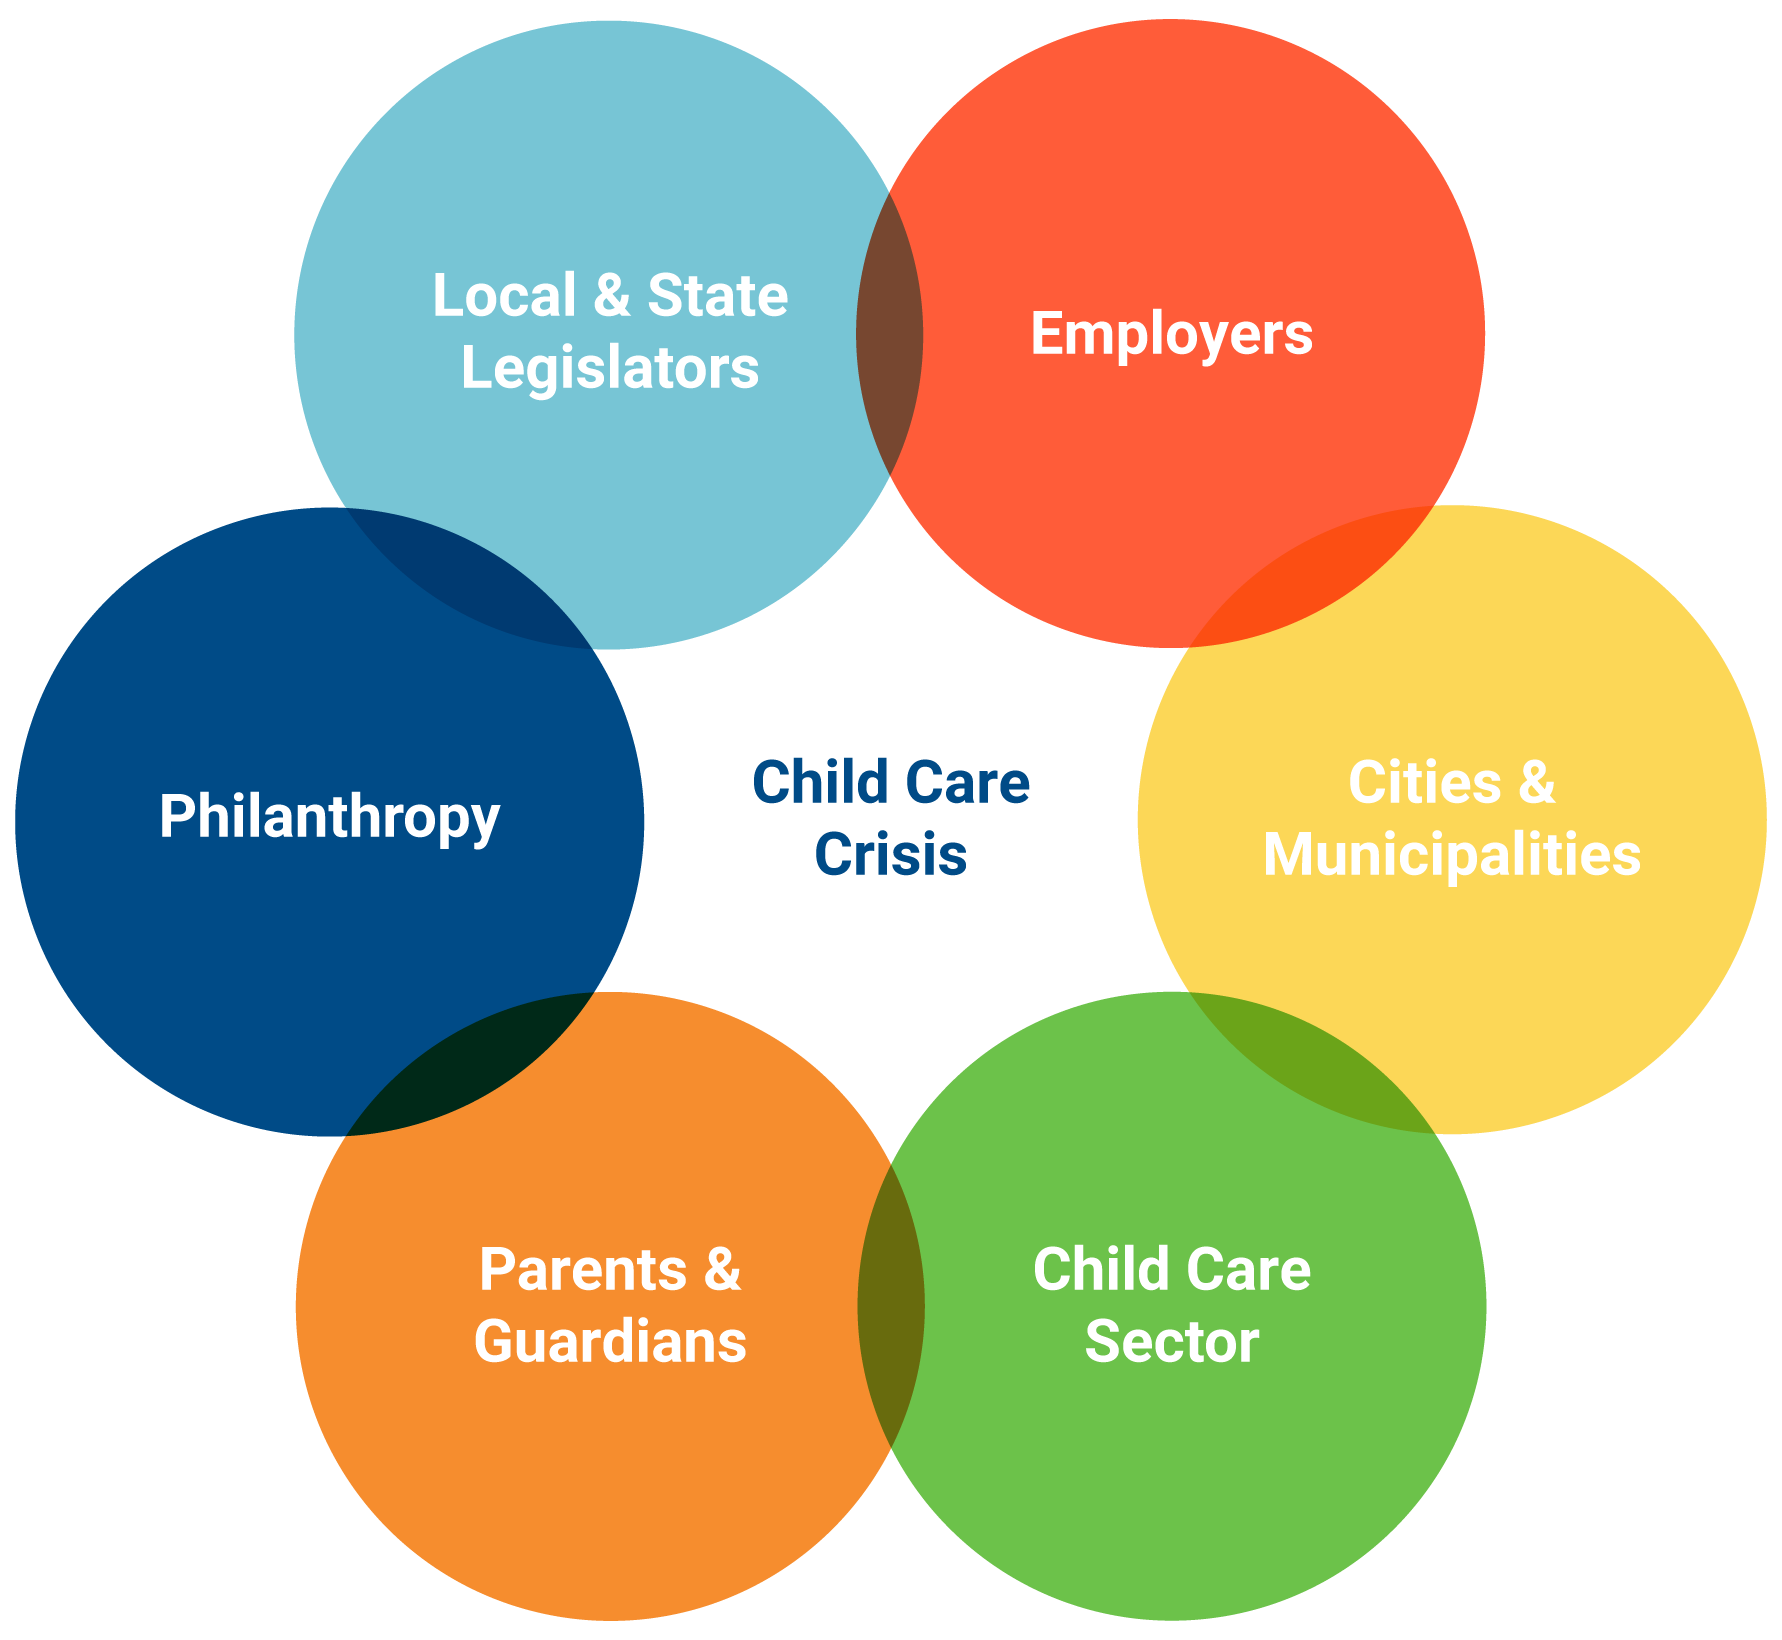 Graphic showing the overlapping stakeholders in the child care crisis